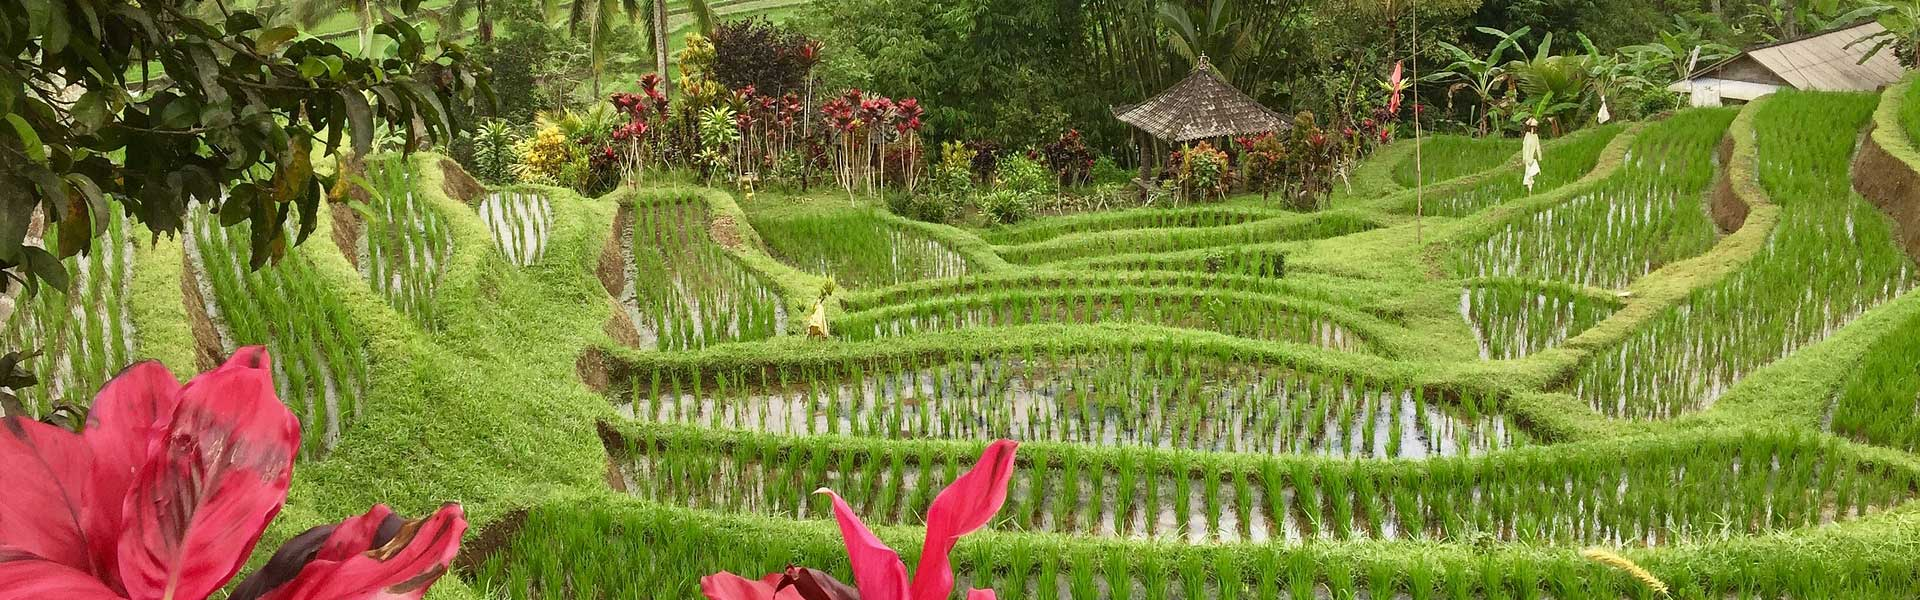 14 reasons why you should visit Bali - our highlights